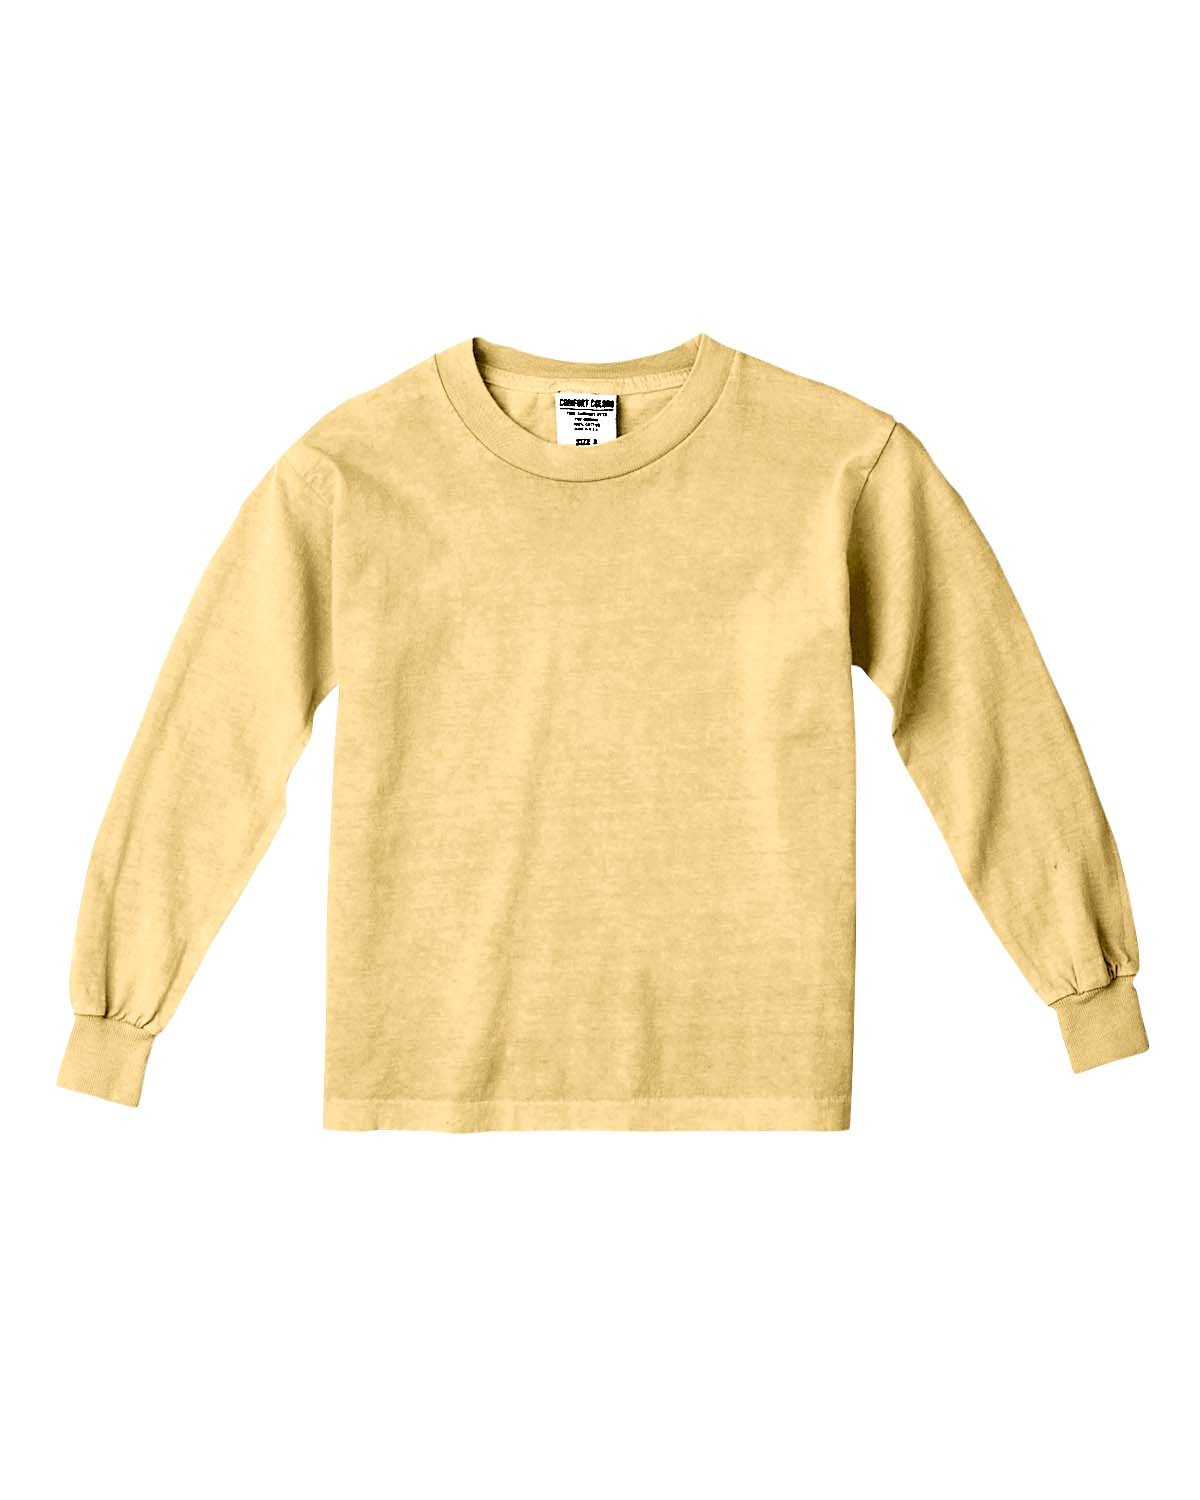 C3483 Comfort Colors Drop Ship BUTTER